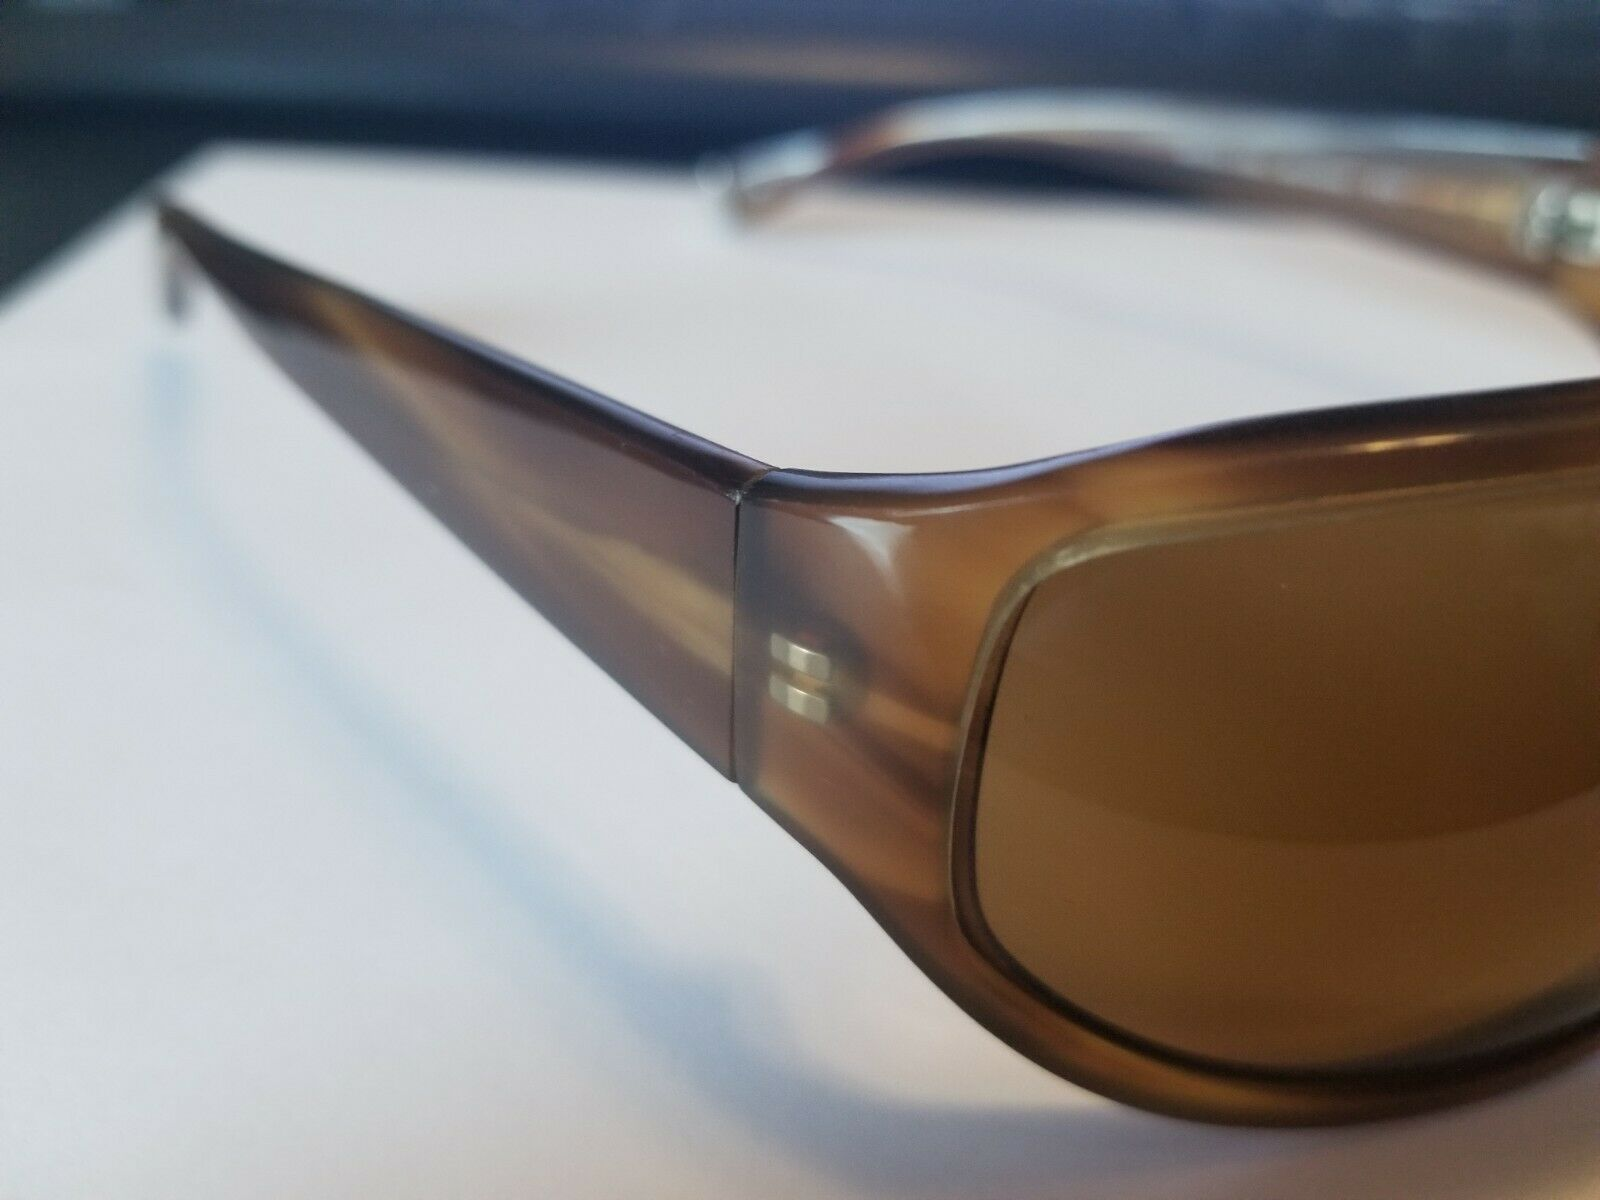 Oliver Peoples NEW Montana Women's Sunglasses COLOR SYC 69 15-120 Made in Japan image 2